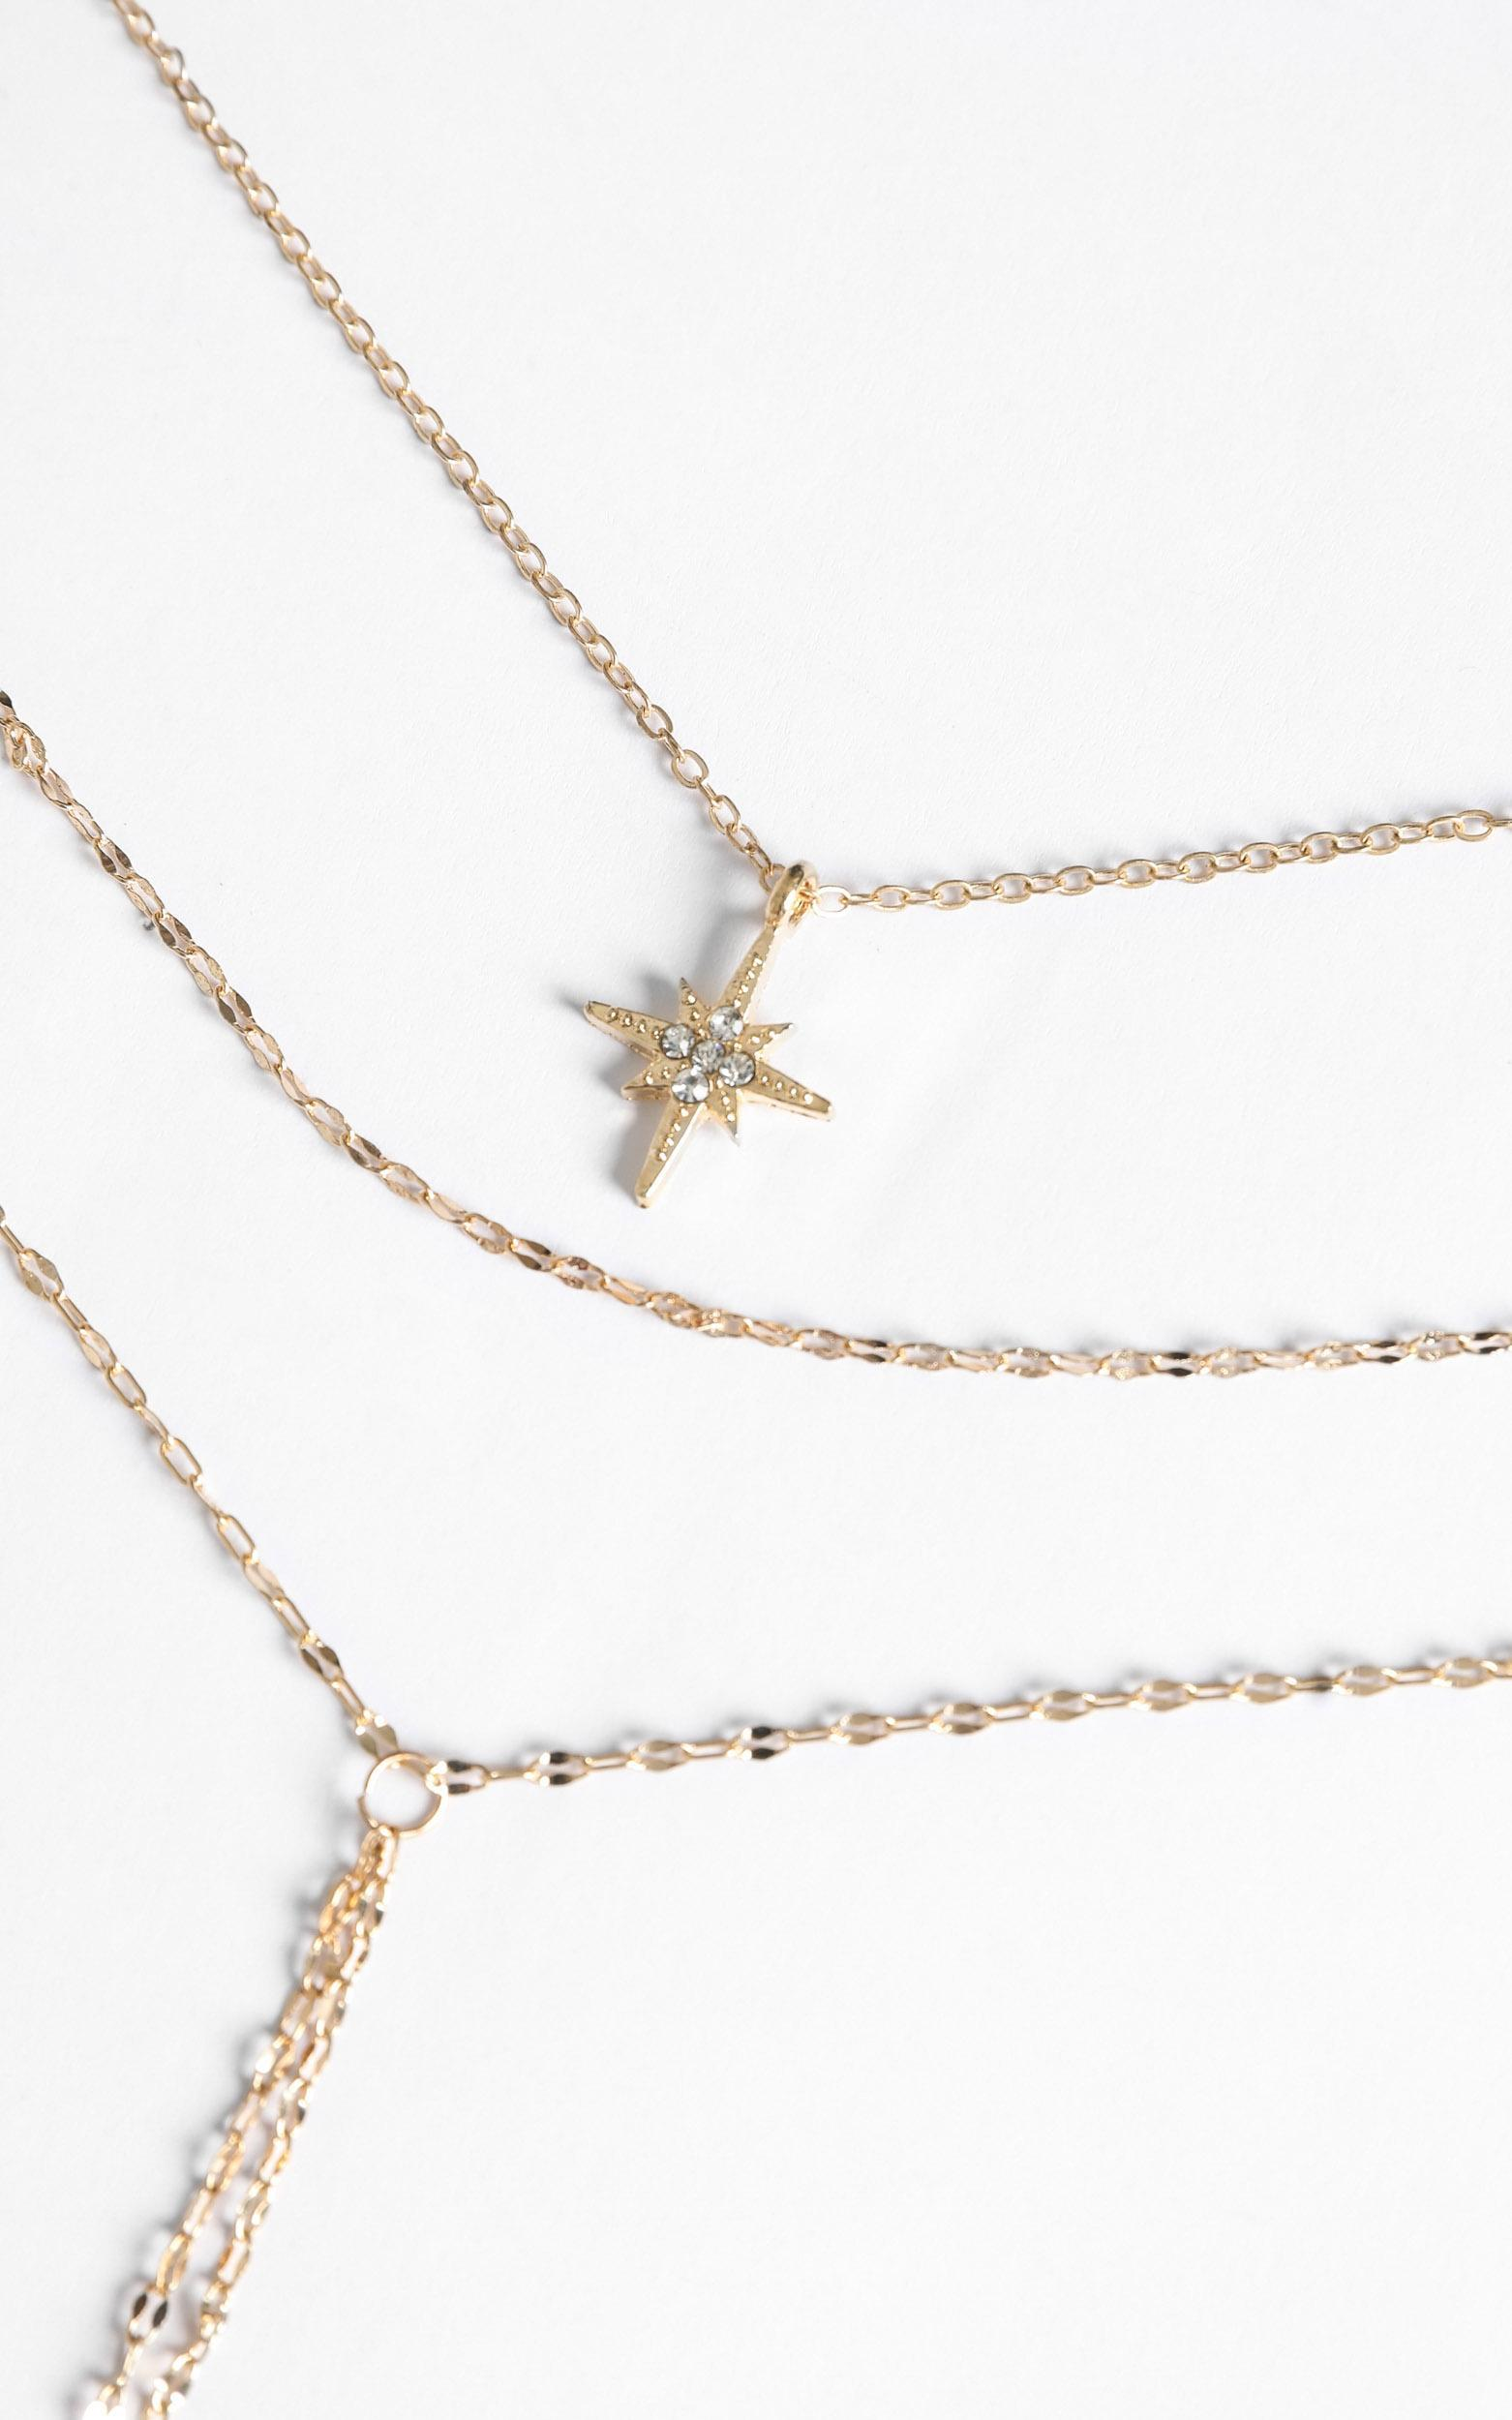 Larissa Layered Necklace in Gold, , hi-res image number null